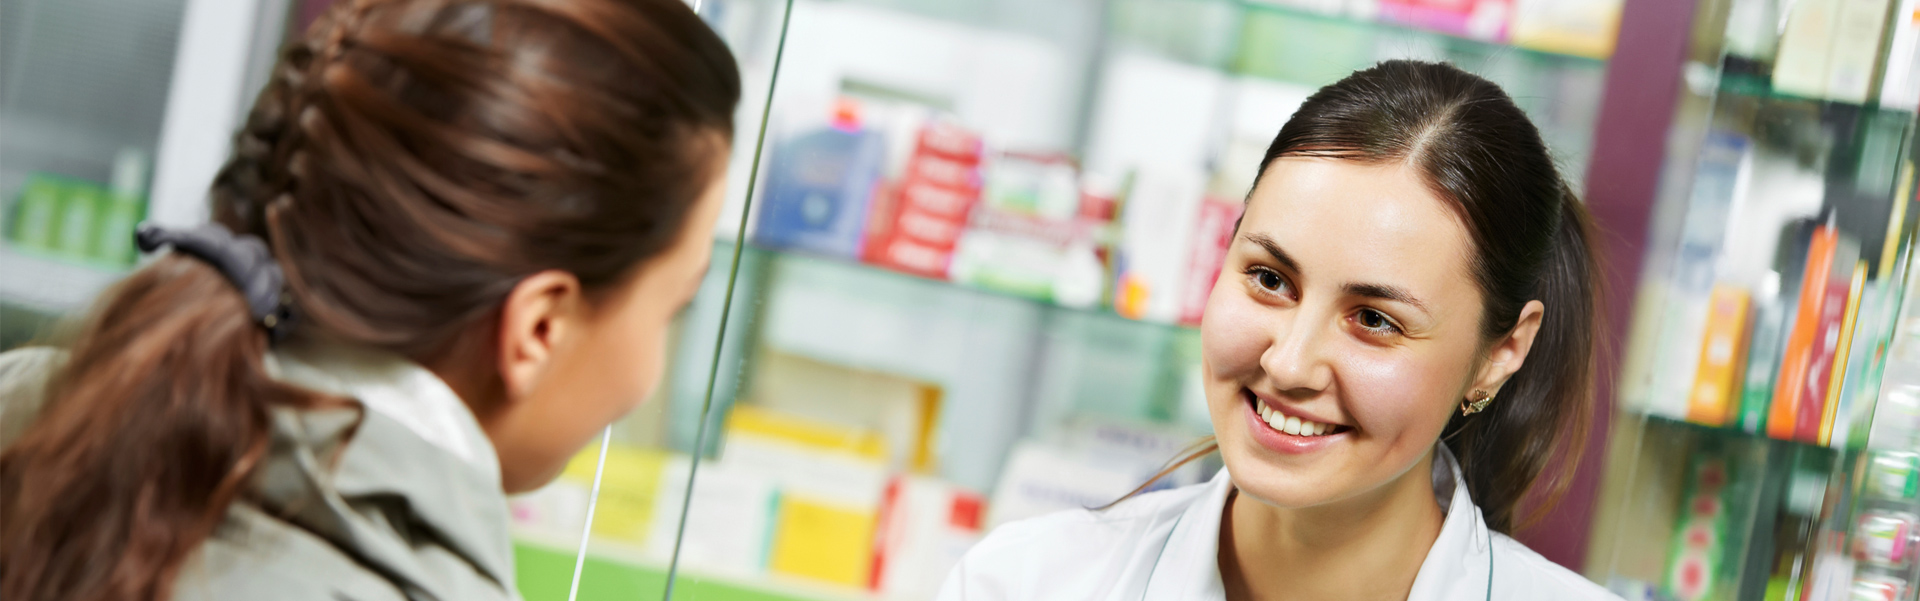 Pharmaceutical Diploma Training Programs and Courses